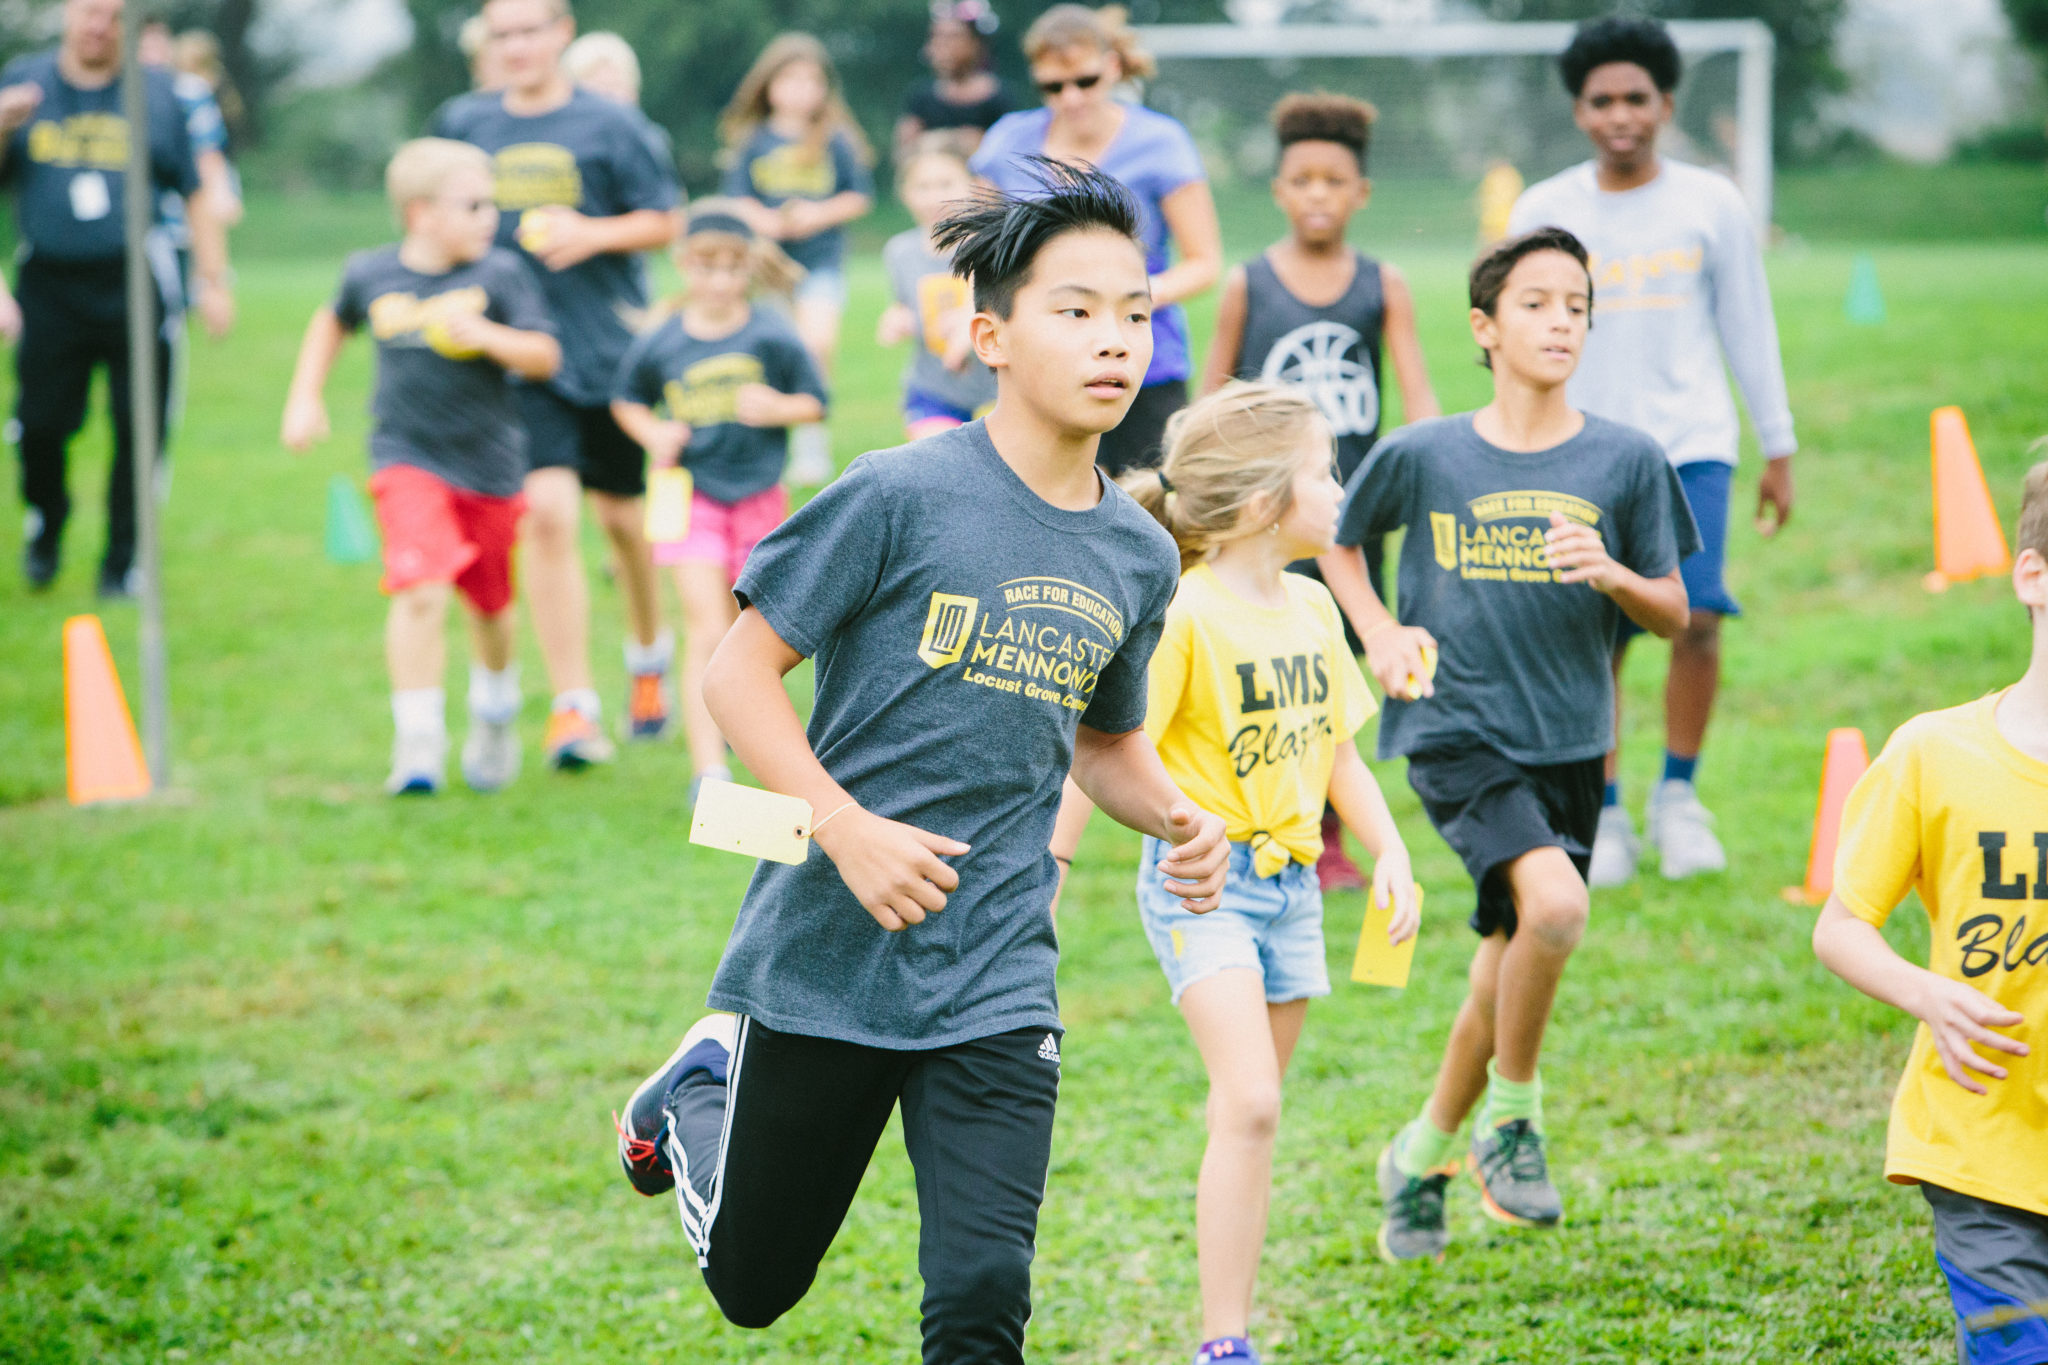 race for education, students running on athletic fields